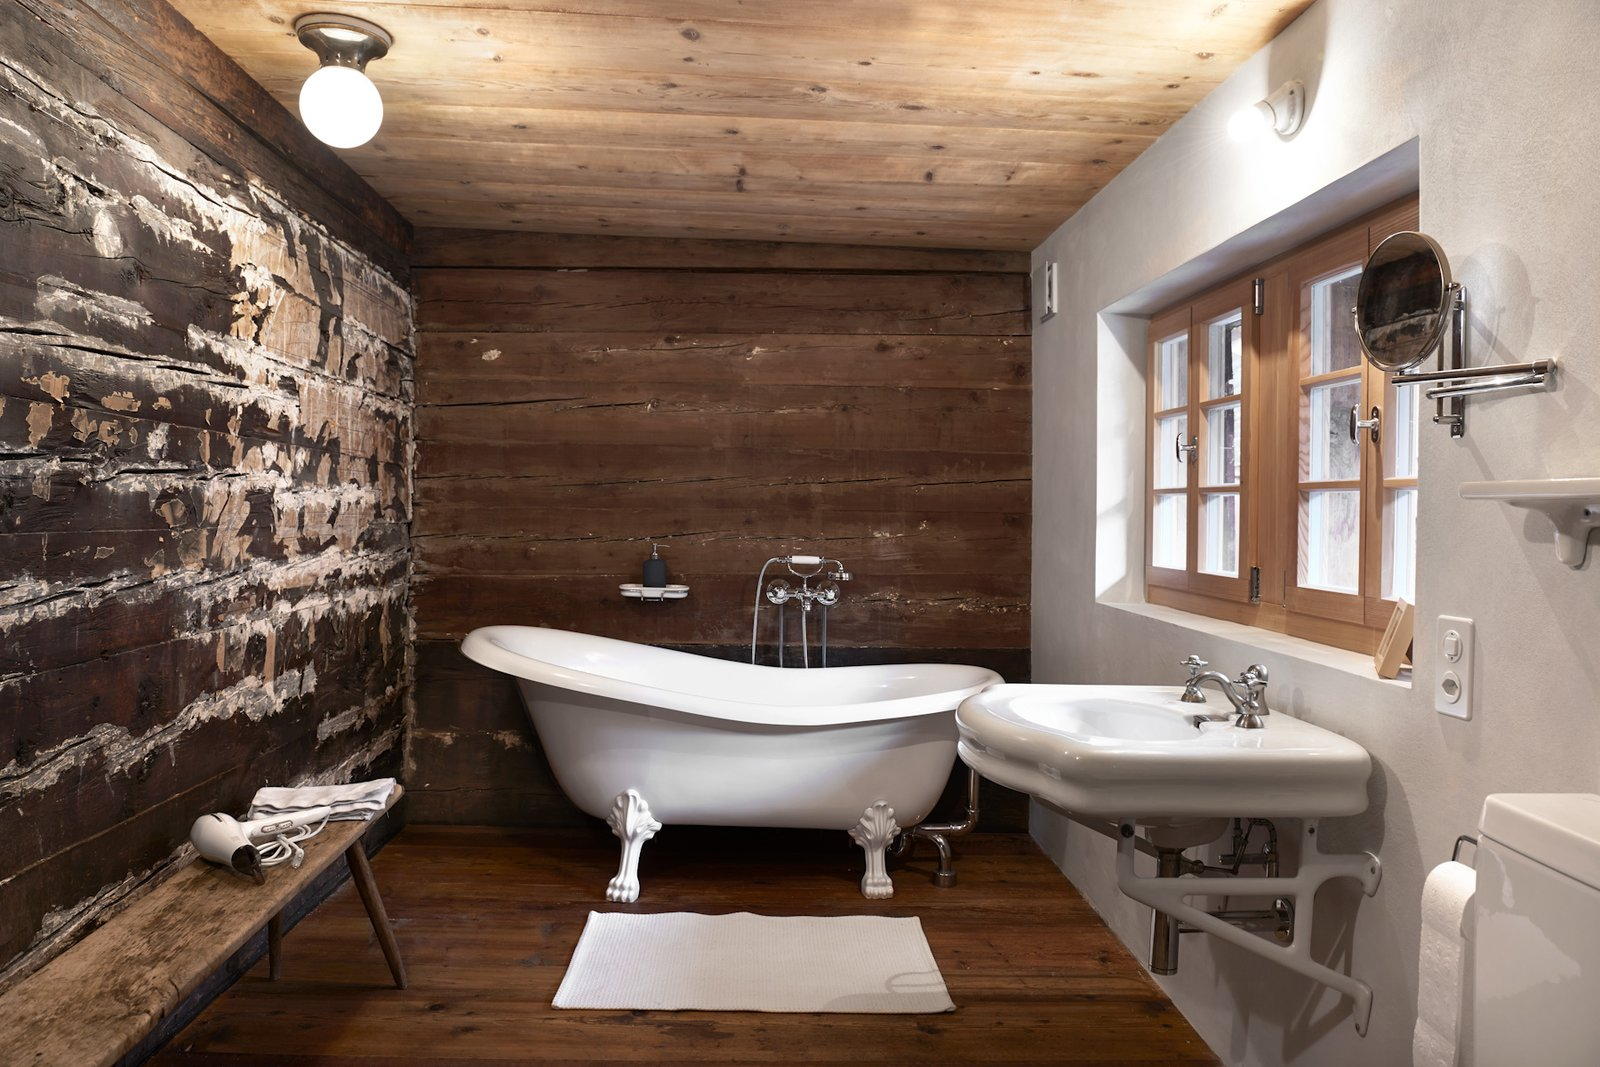 Bath Room, Freestanding Tub, Wall Mount Sink, and Dark Hardwood Floor  Photo 12 of 13 in A Renovated Pagan House in the Swiss Alps Puts Guests in Touch With the Past